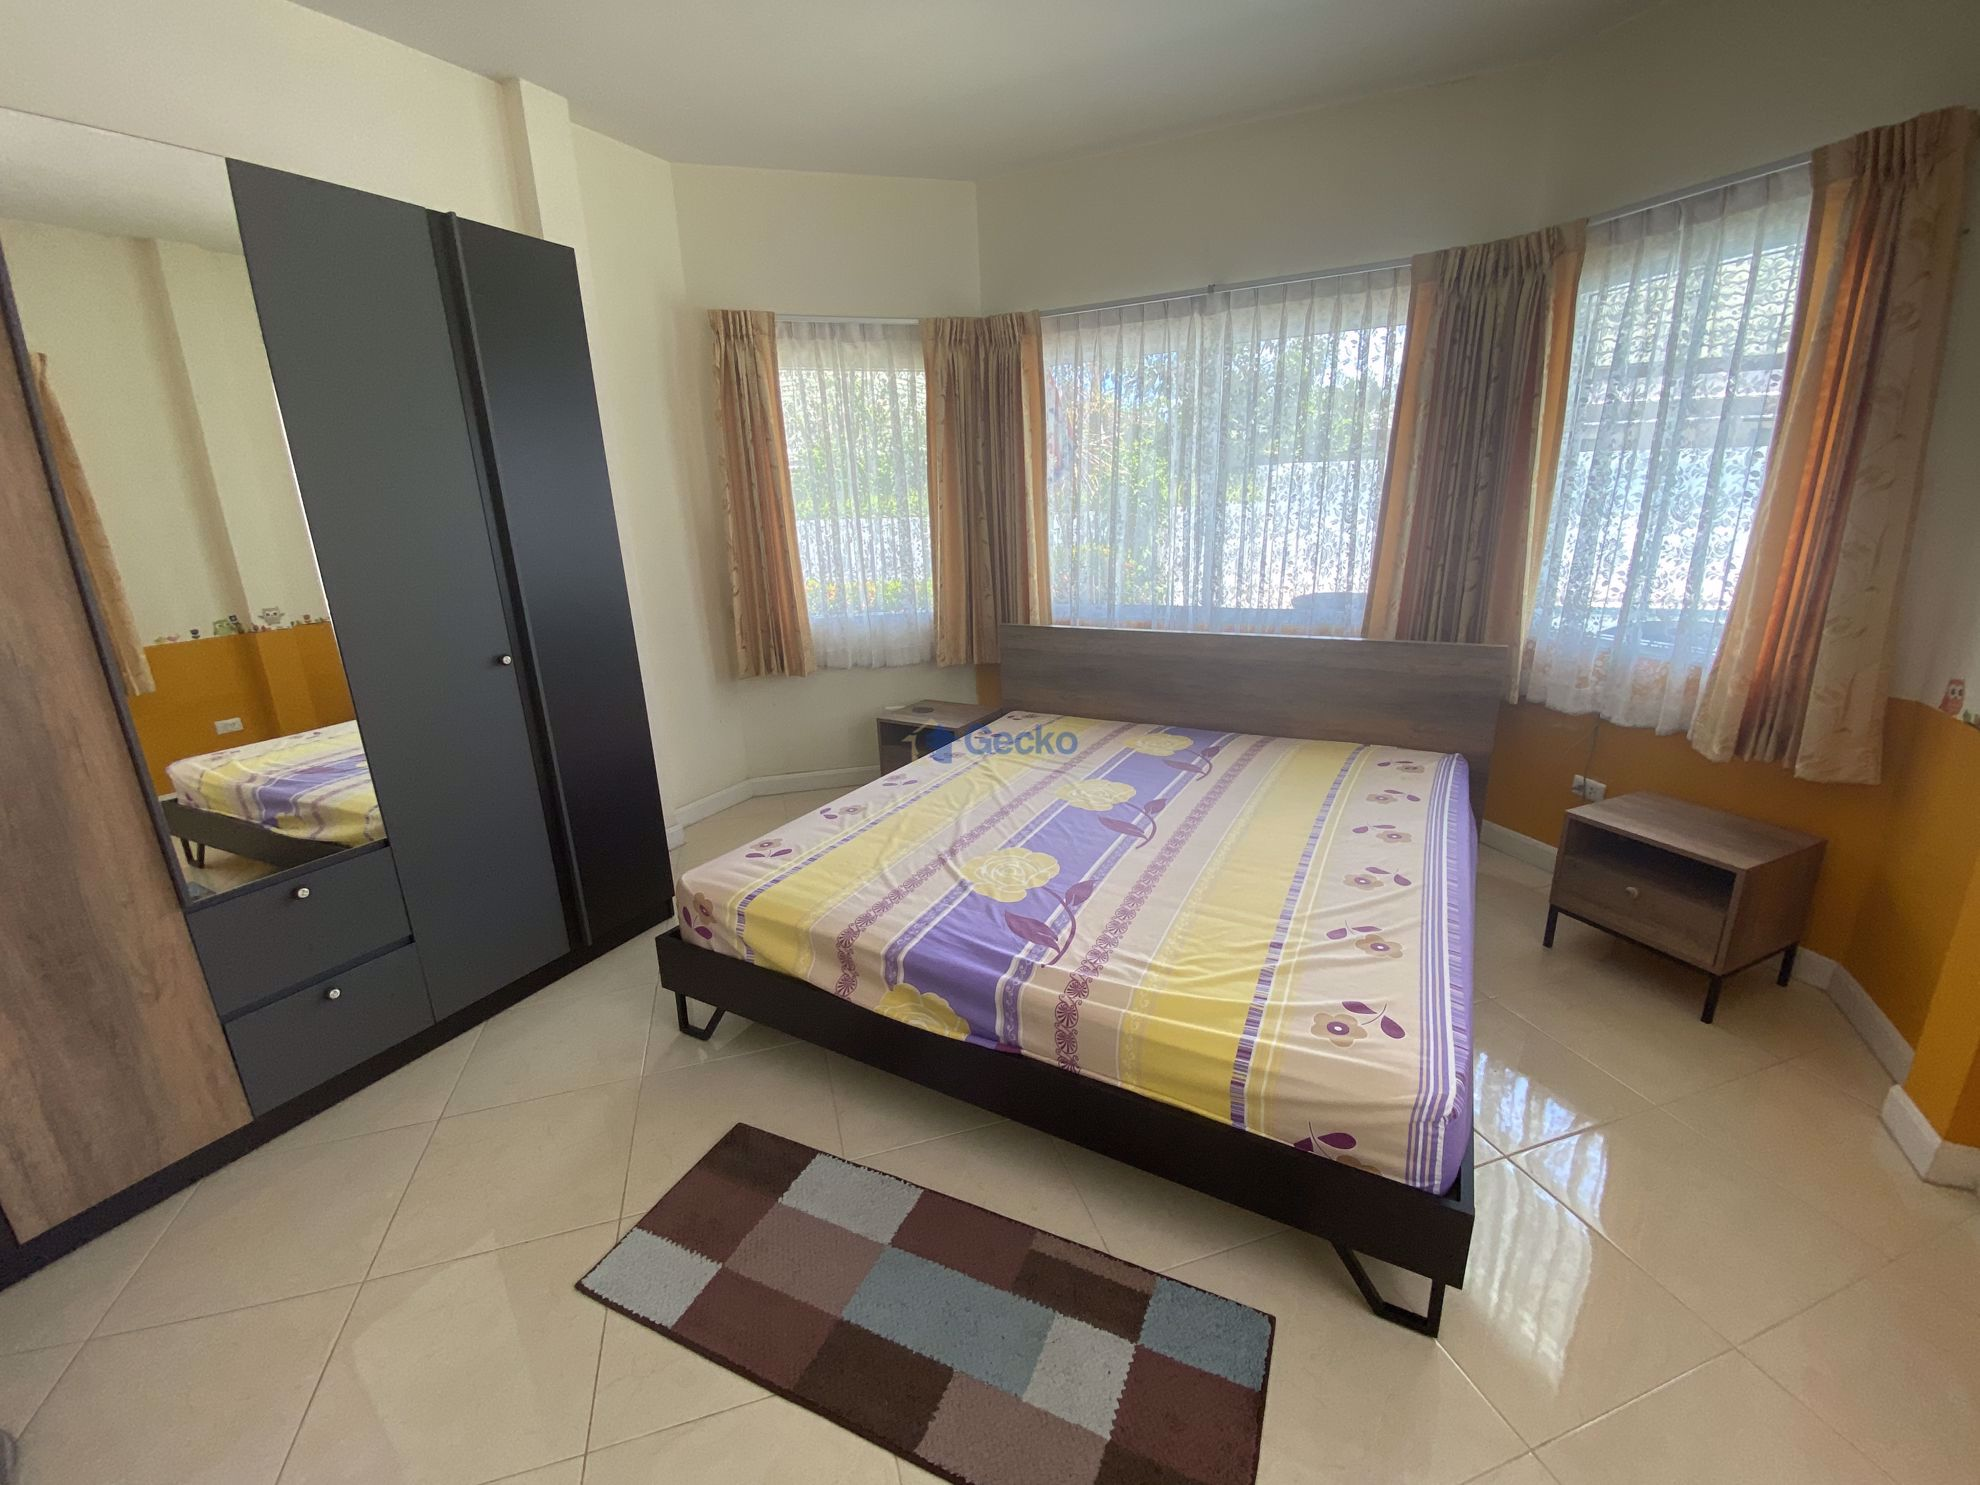 Picture of 3 Bedrooms bed in House in Green Field Villa 3 in East Pattaya H009282